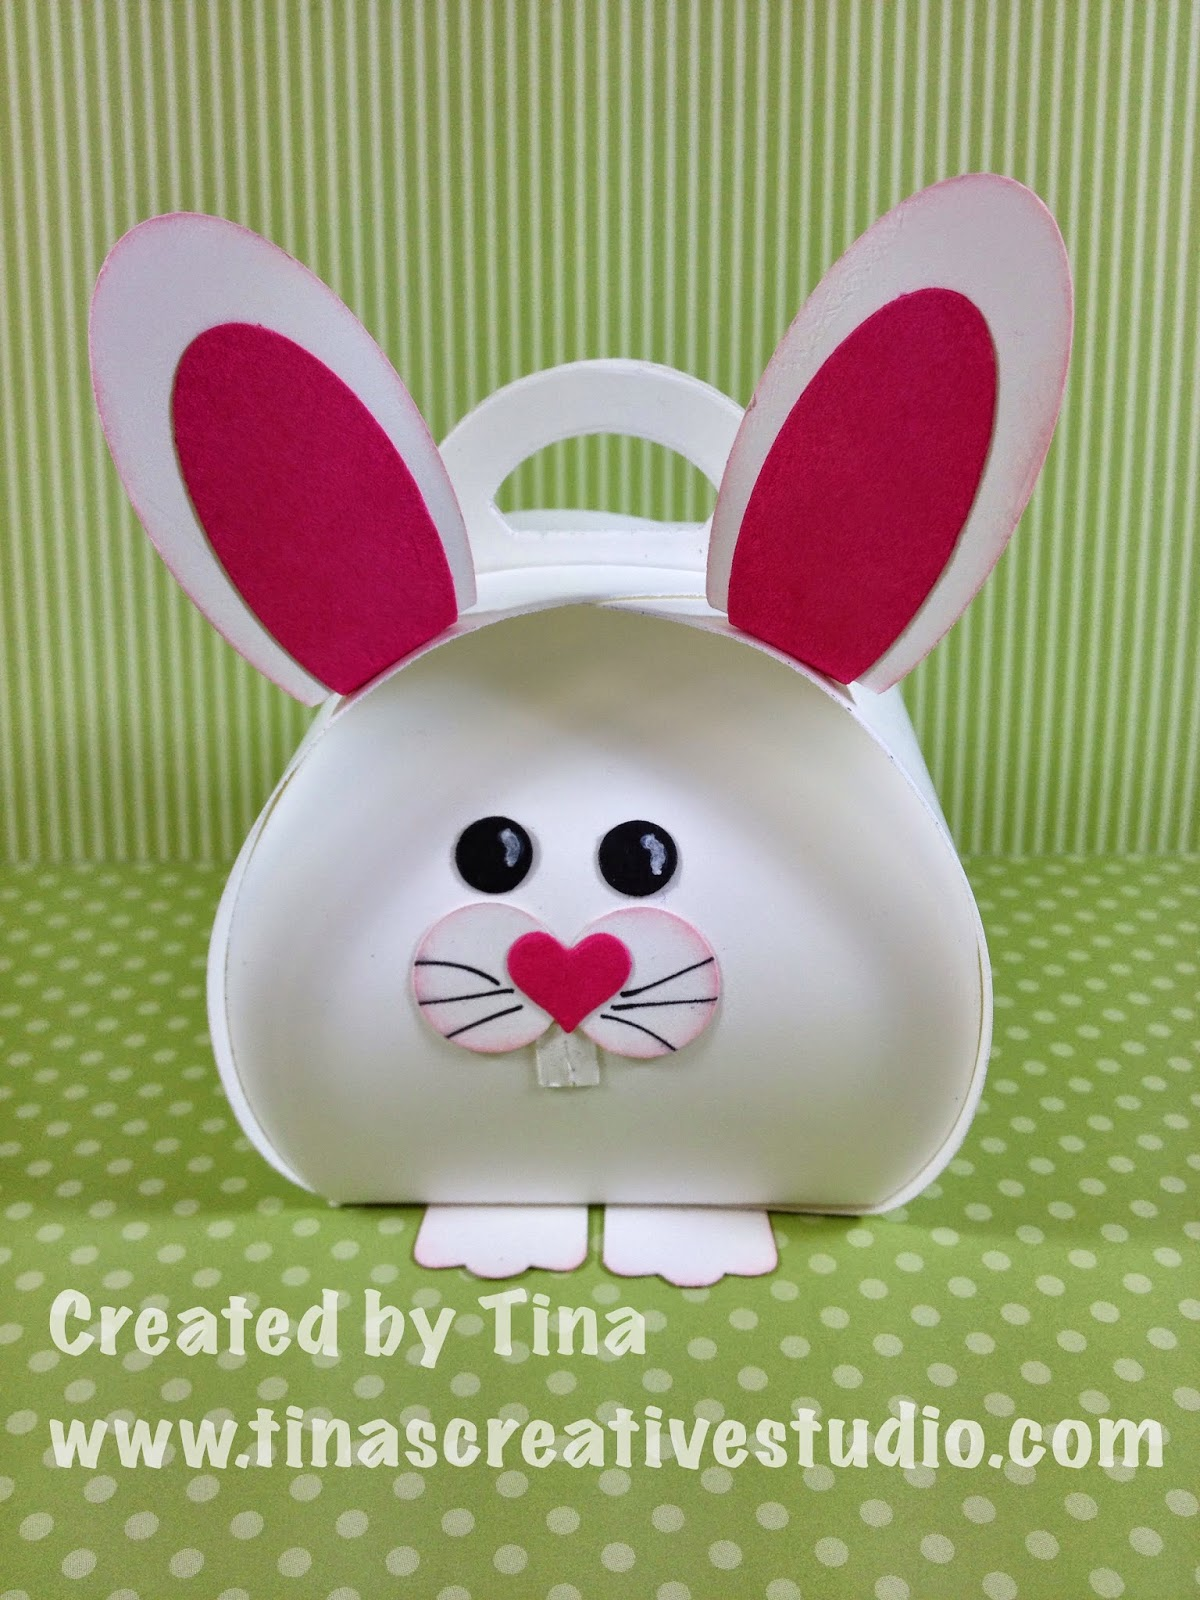 Tinas creative studio use stampin ups curvy keepsake box die these are great for little gifts you can put a small easter egg inside im making some for the upcoming sa papercraft fair so if youre in the area negle Image collections